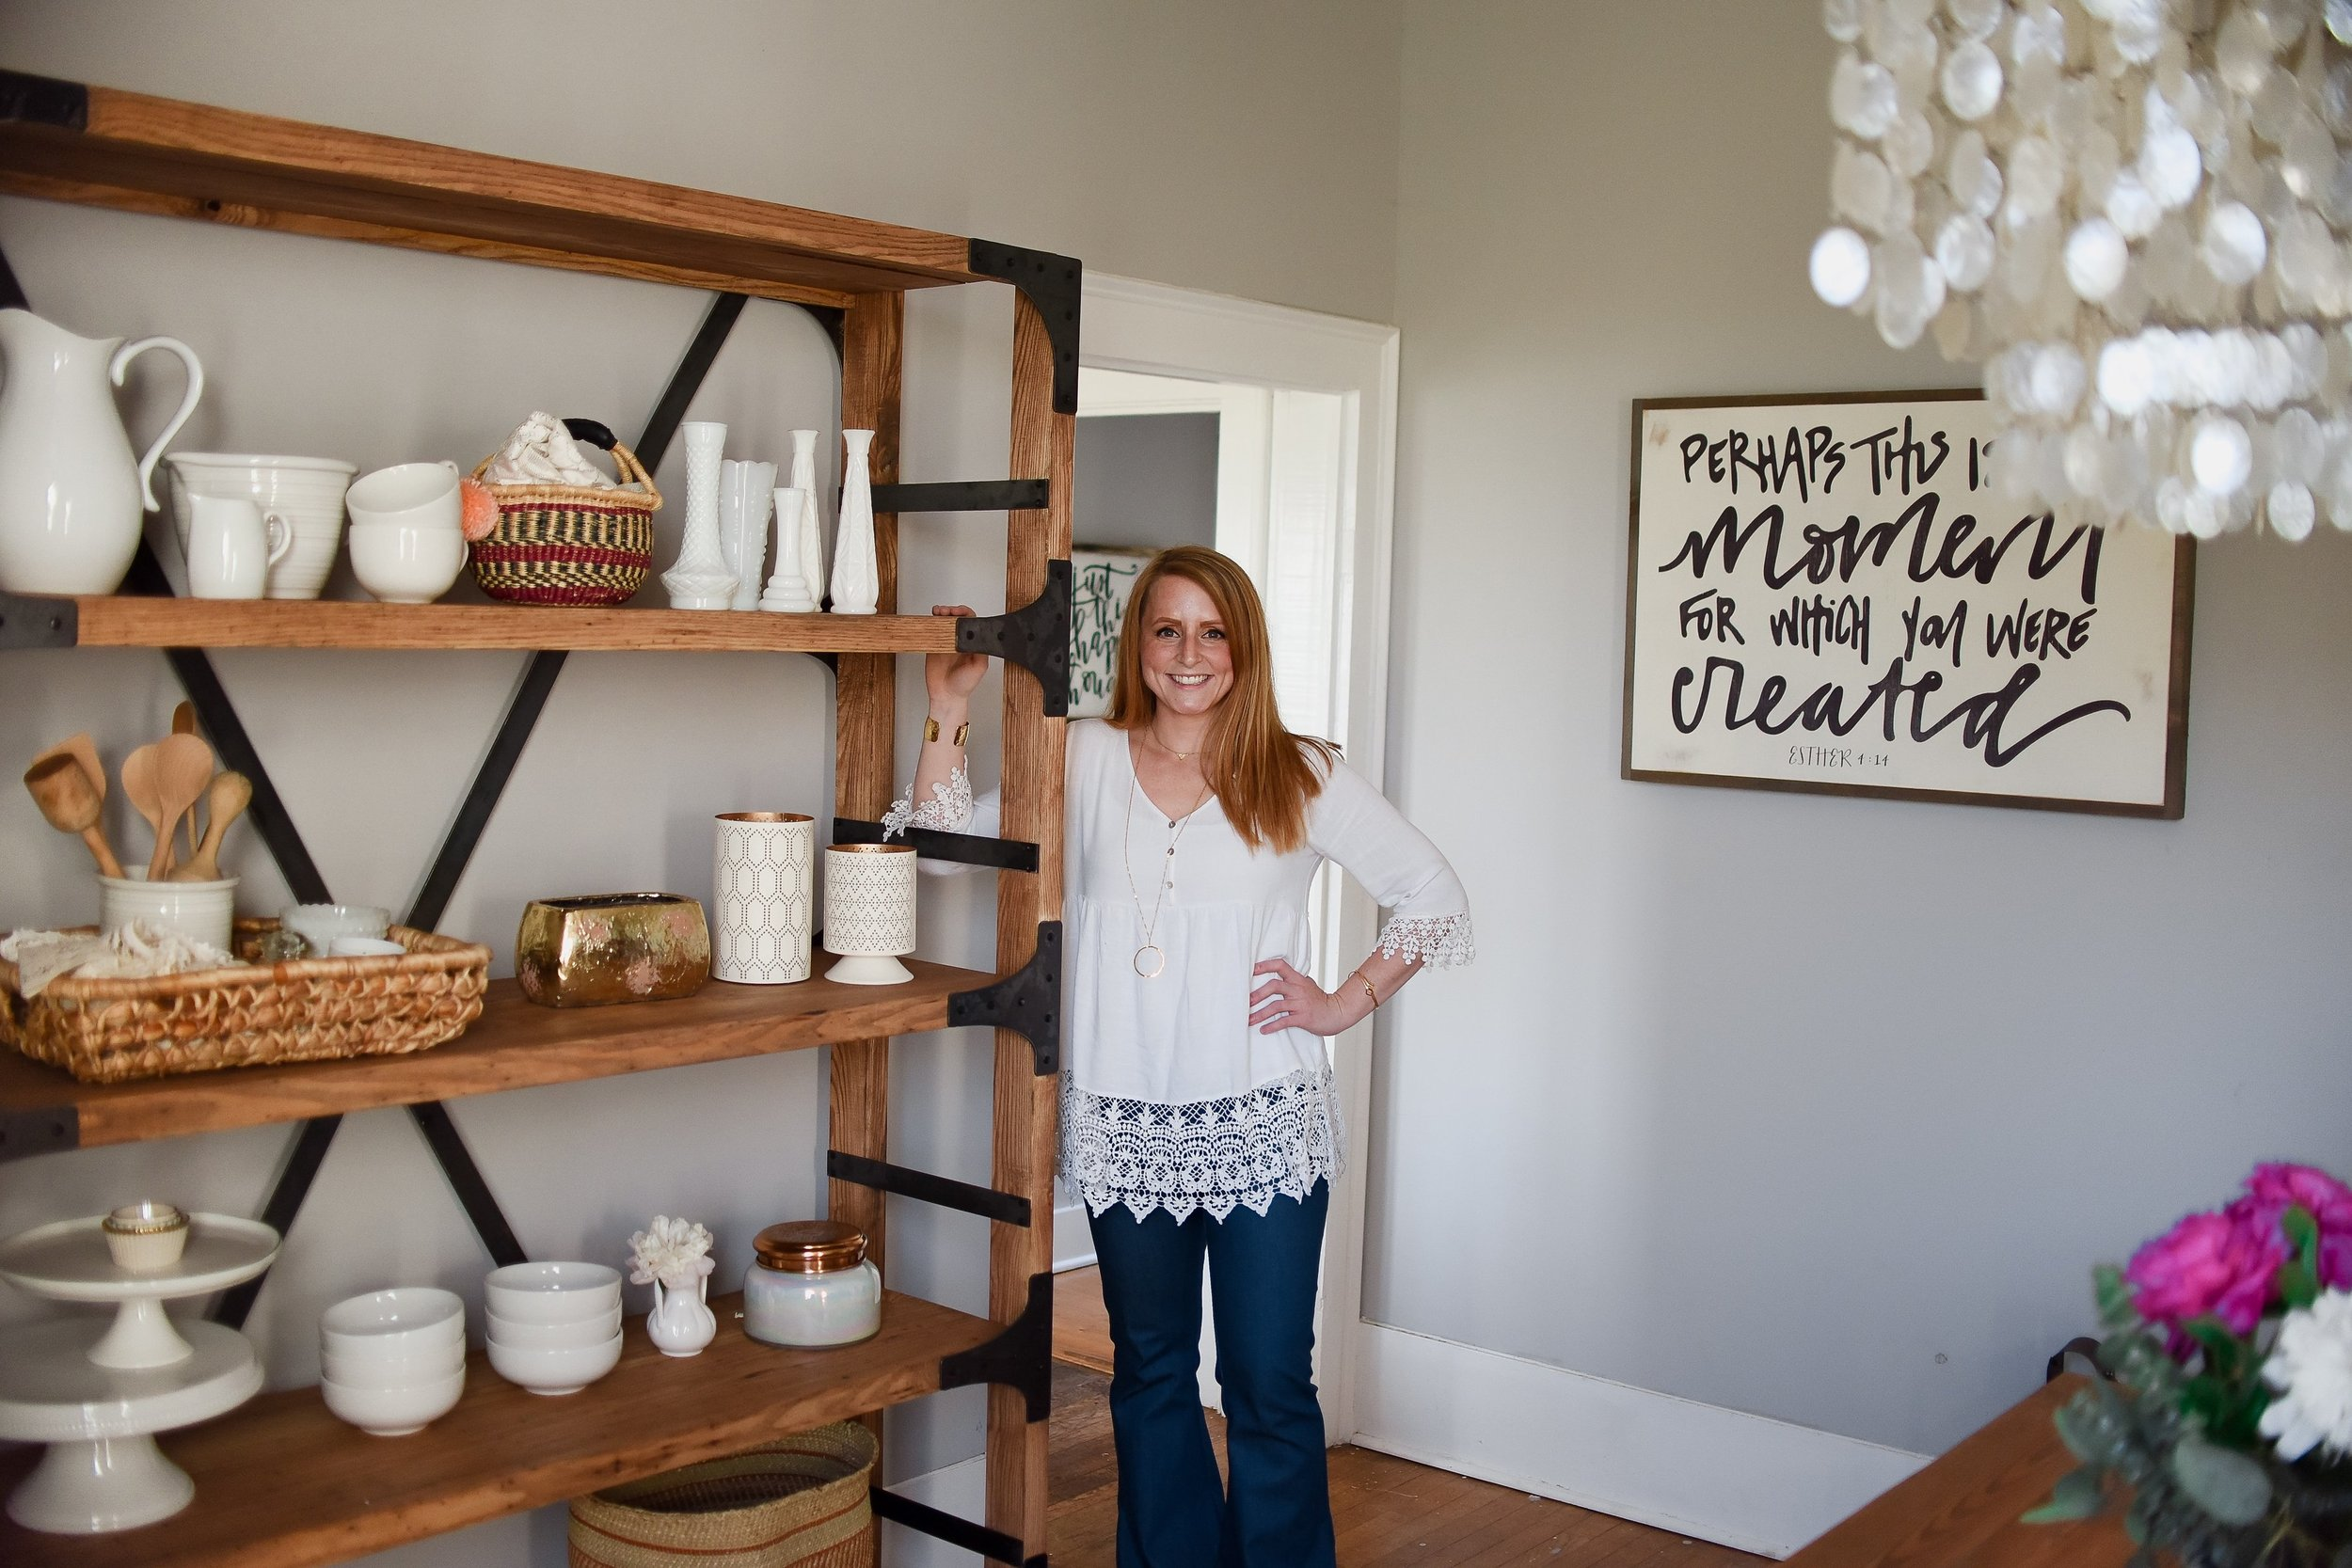 This gorgeous shelf is part of my furniture line with   White Shanty  . I am honored to design so many unique and timeless pieces. I can't wait to share more pieces with you soon.